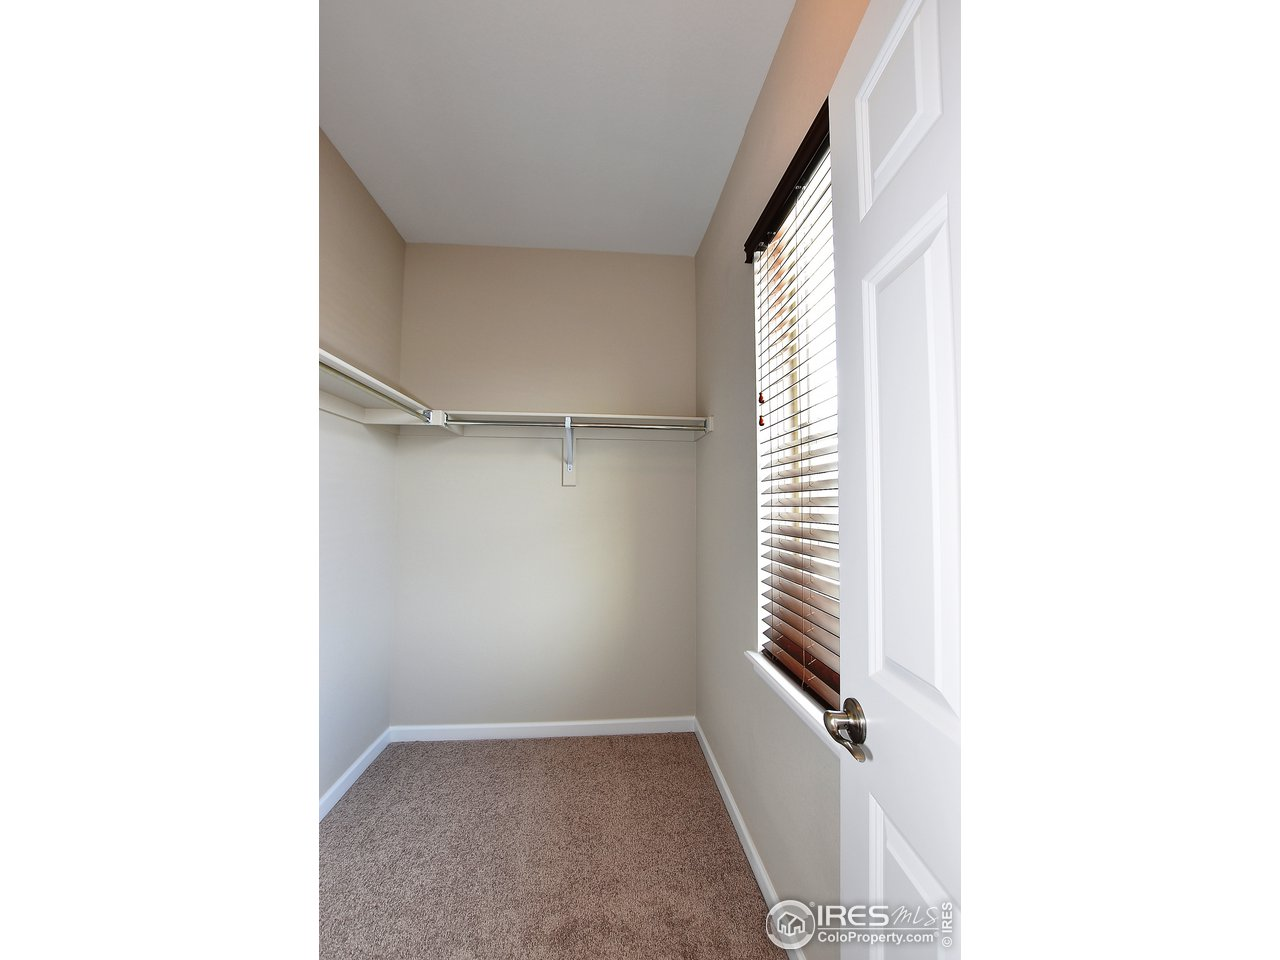 All 3 second floor bedrooms have walk-in closets.